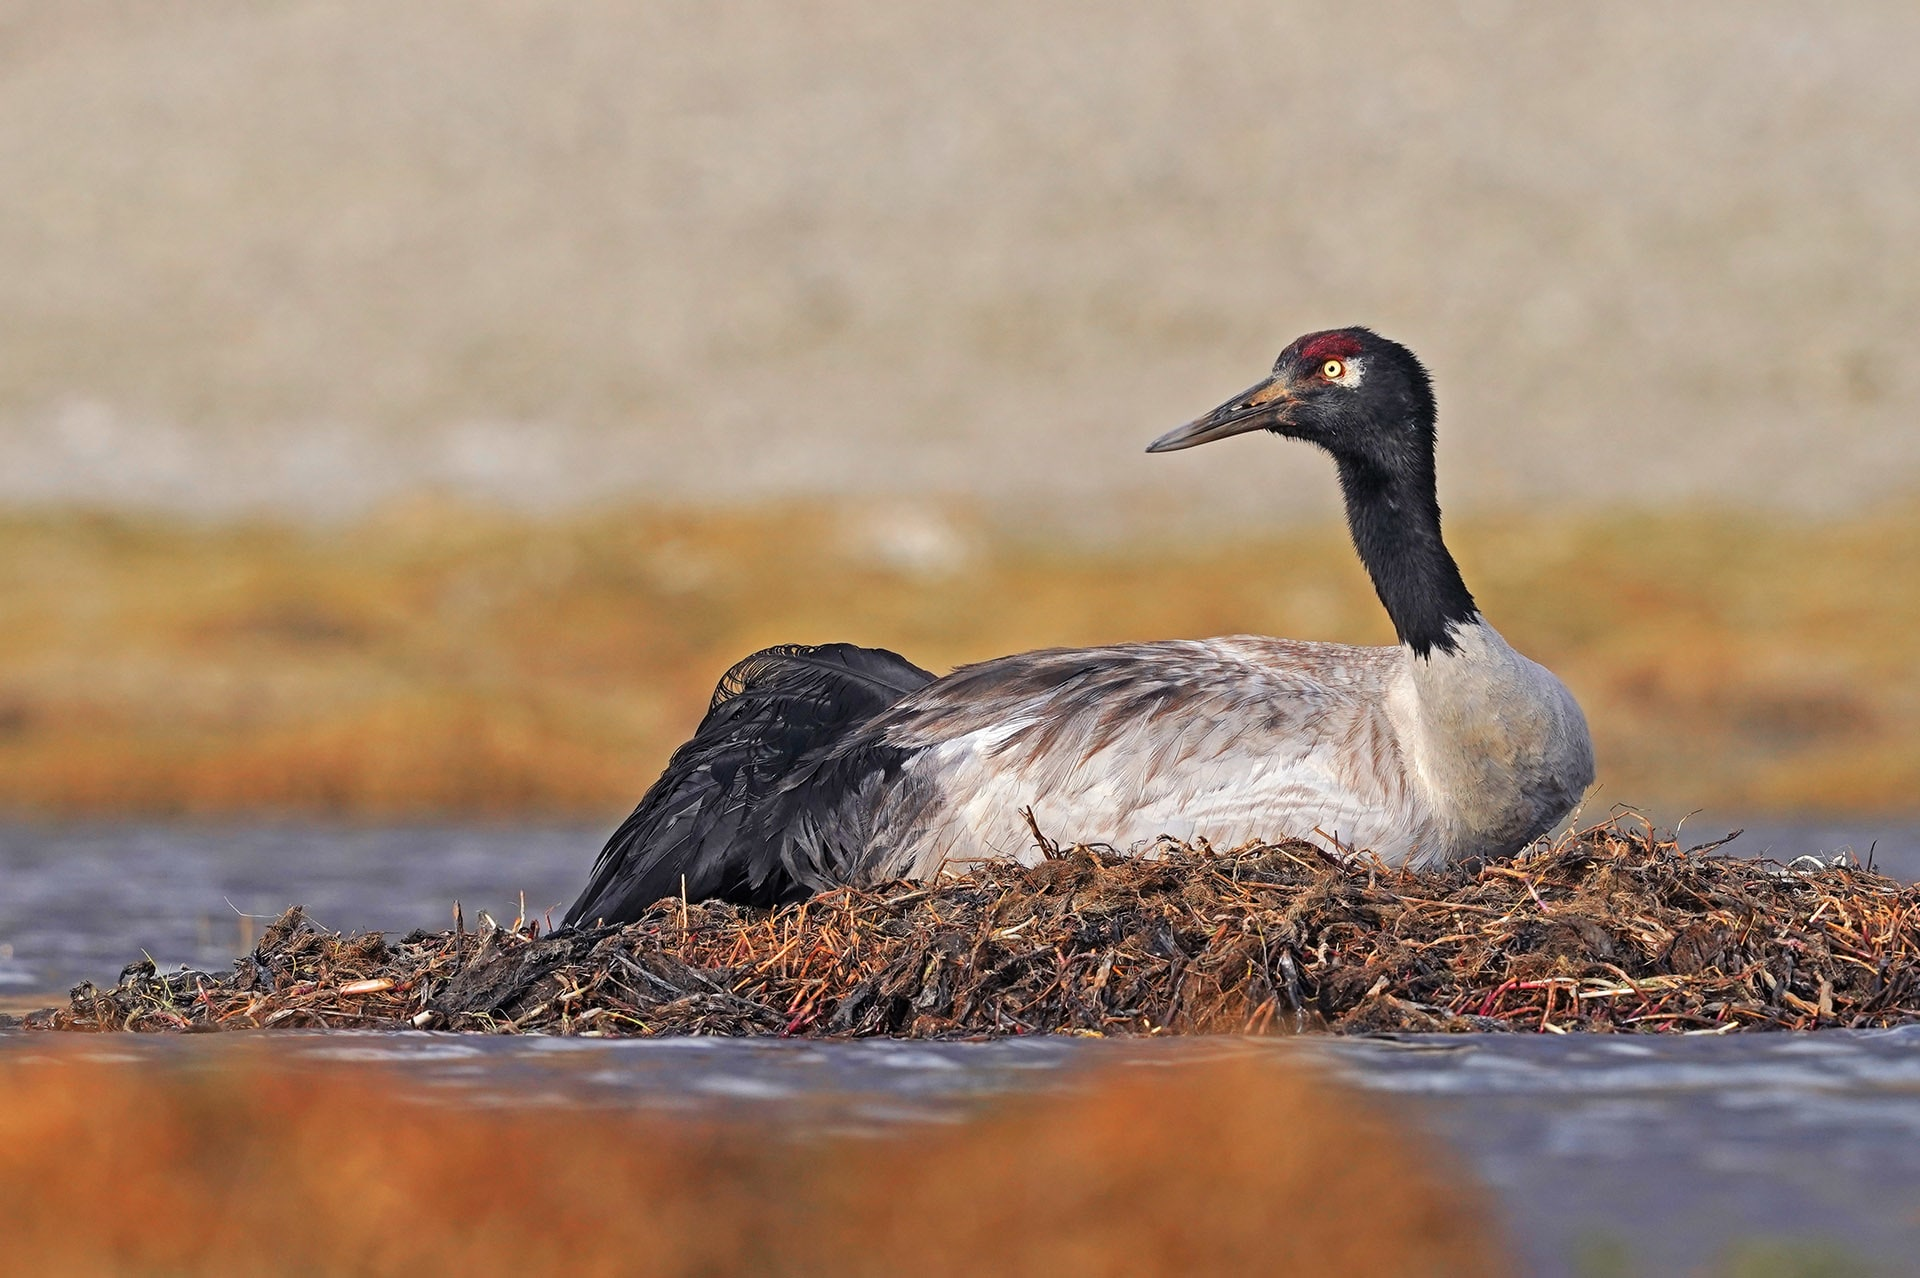 Females lay a clutch of two eggs, generally in May, when the snow has melted and the Himalayan summer is underway. Black-necked cranes incubate their eggs for 30-36 days.